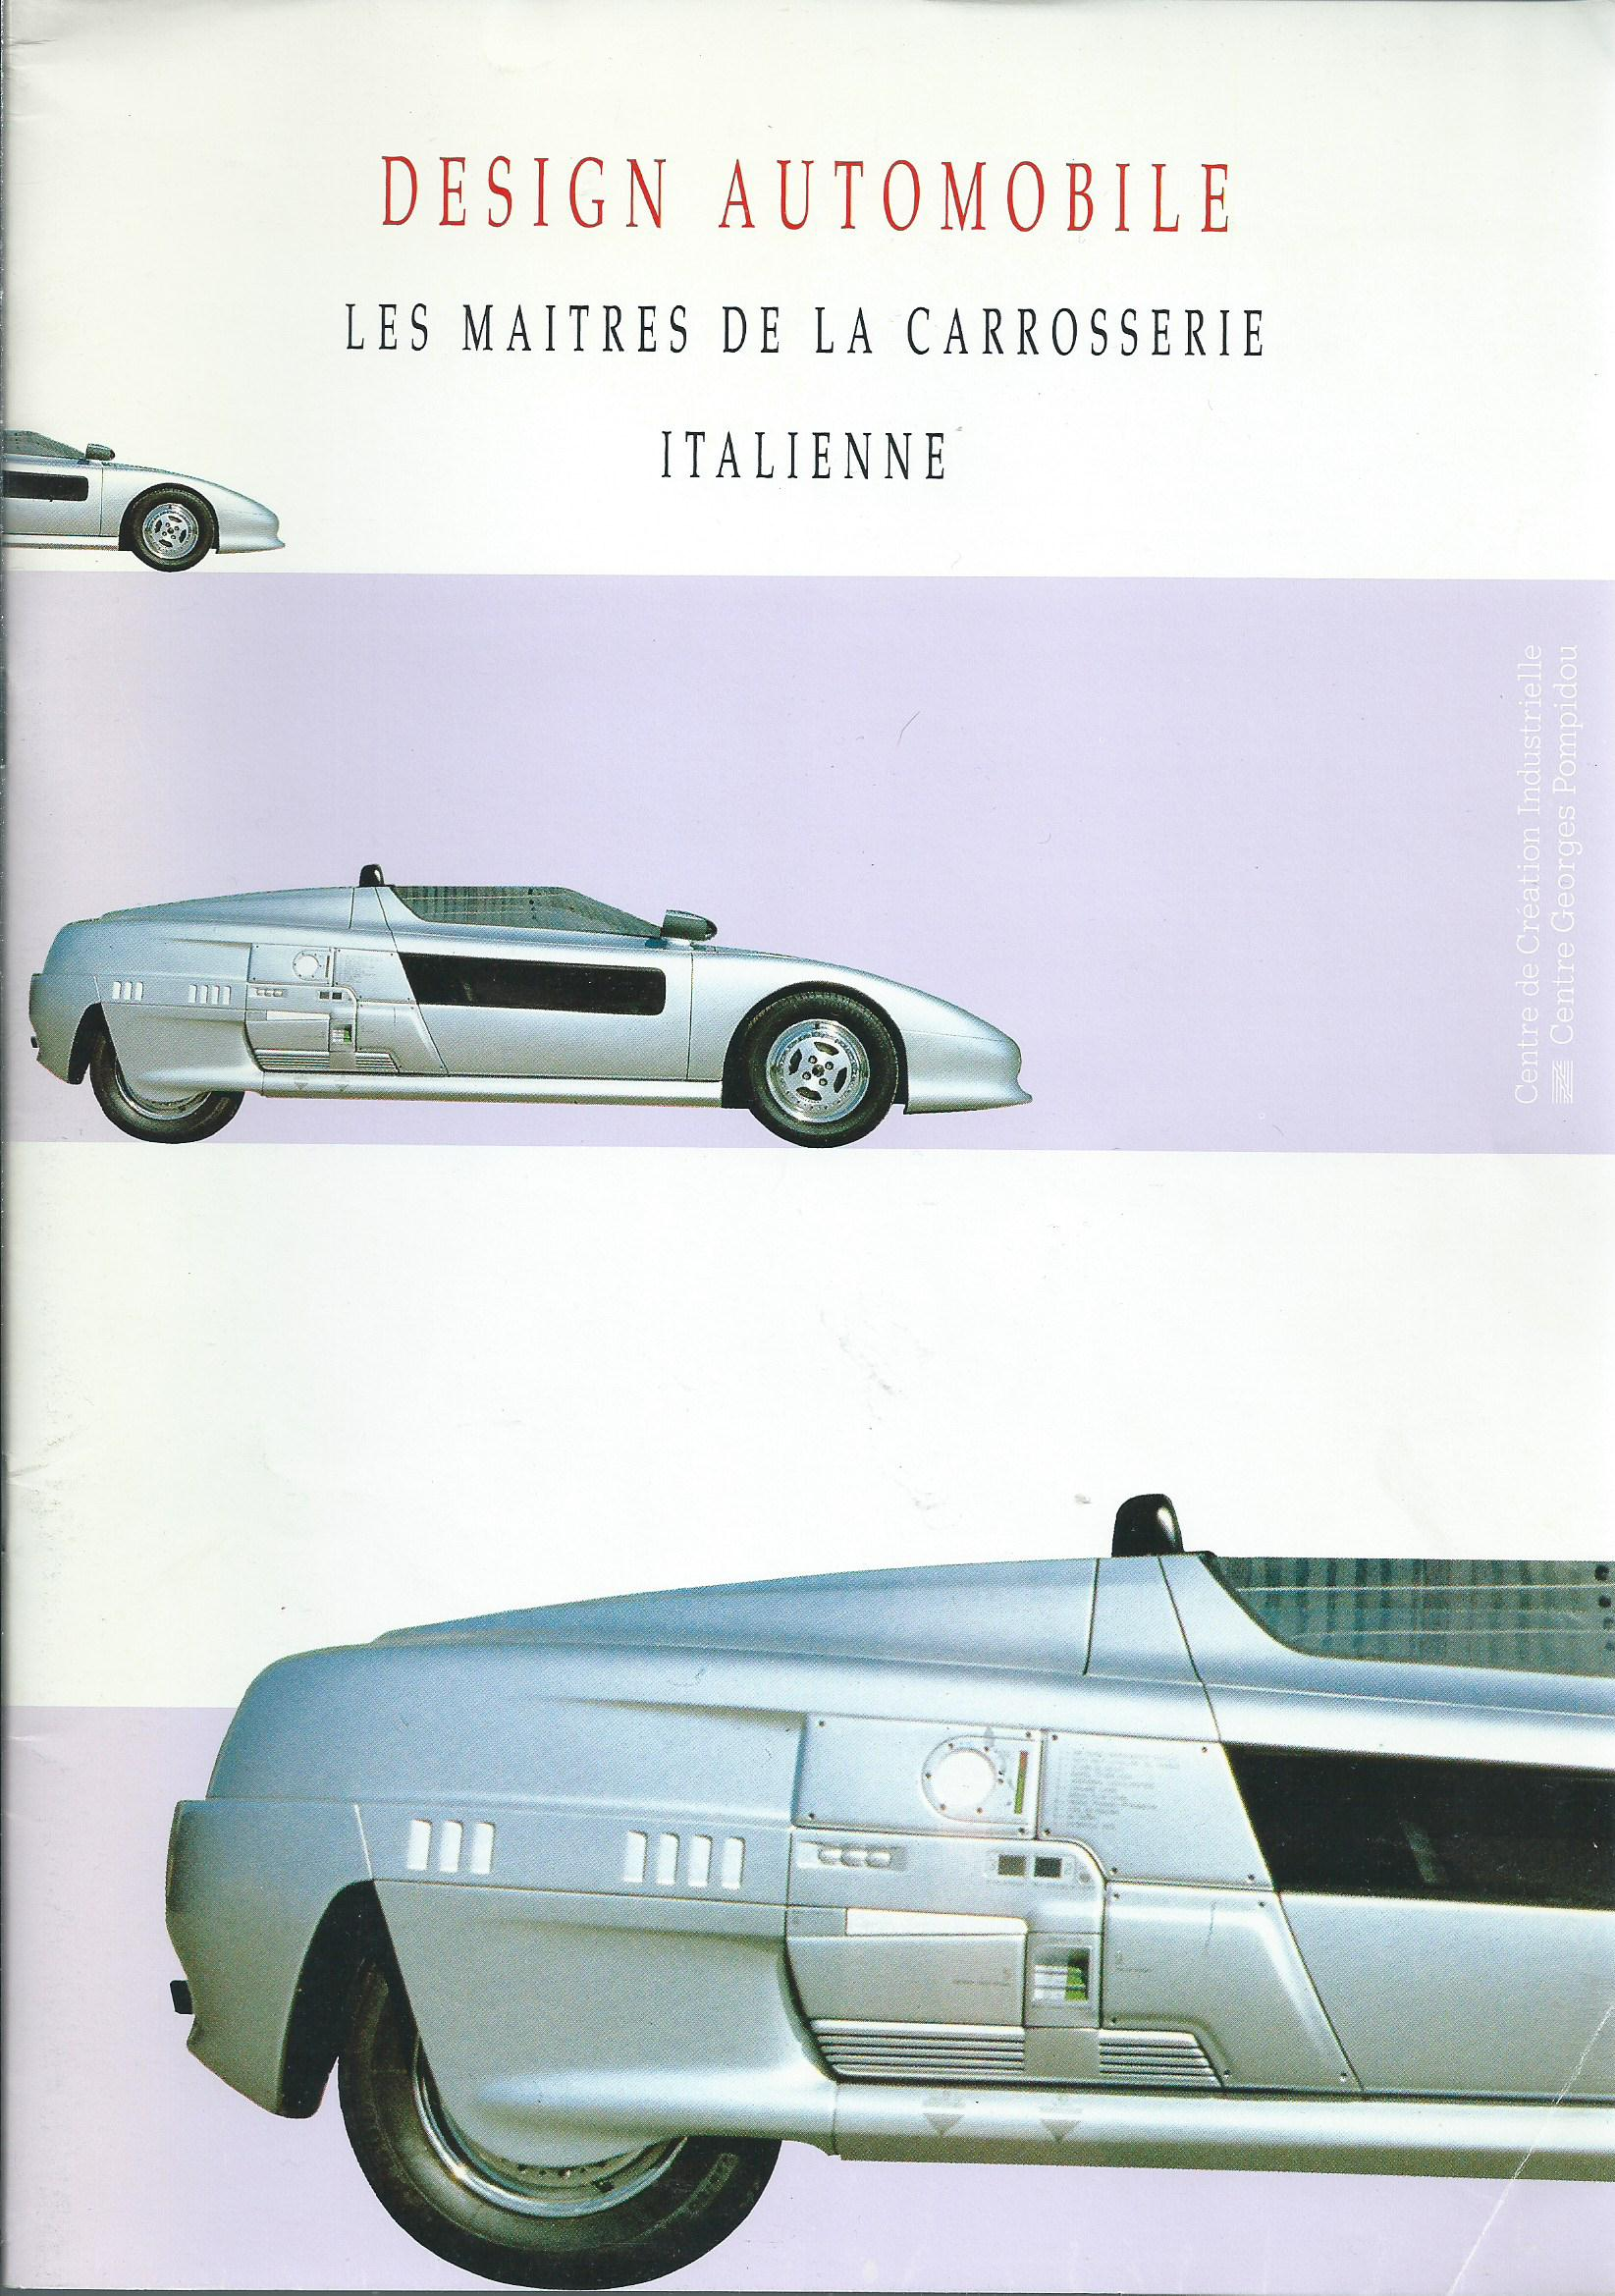 Design automobile